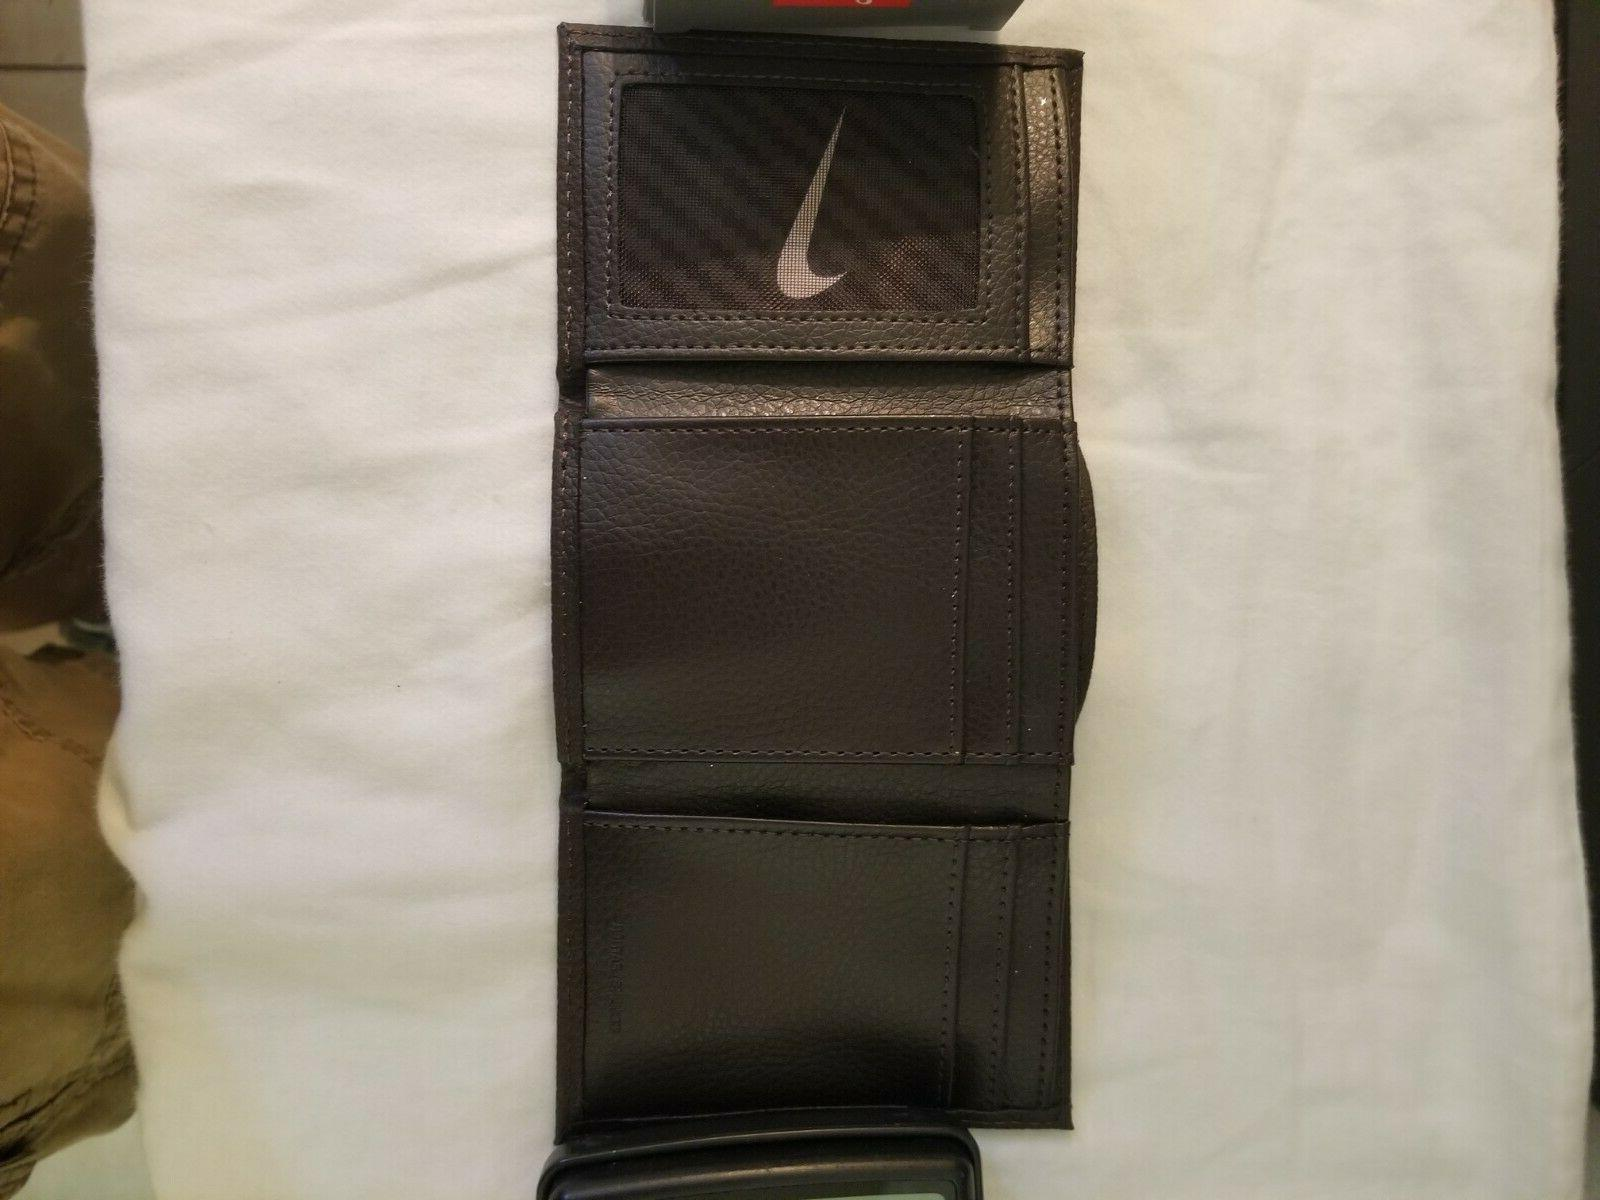 Nike brand Trifold Wallet